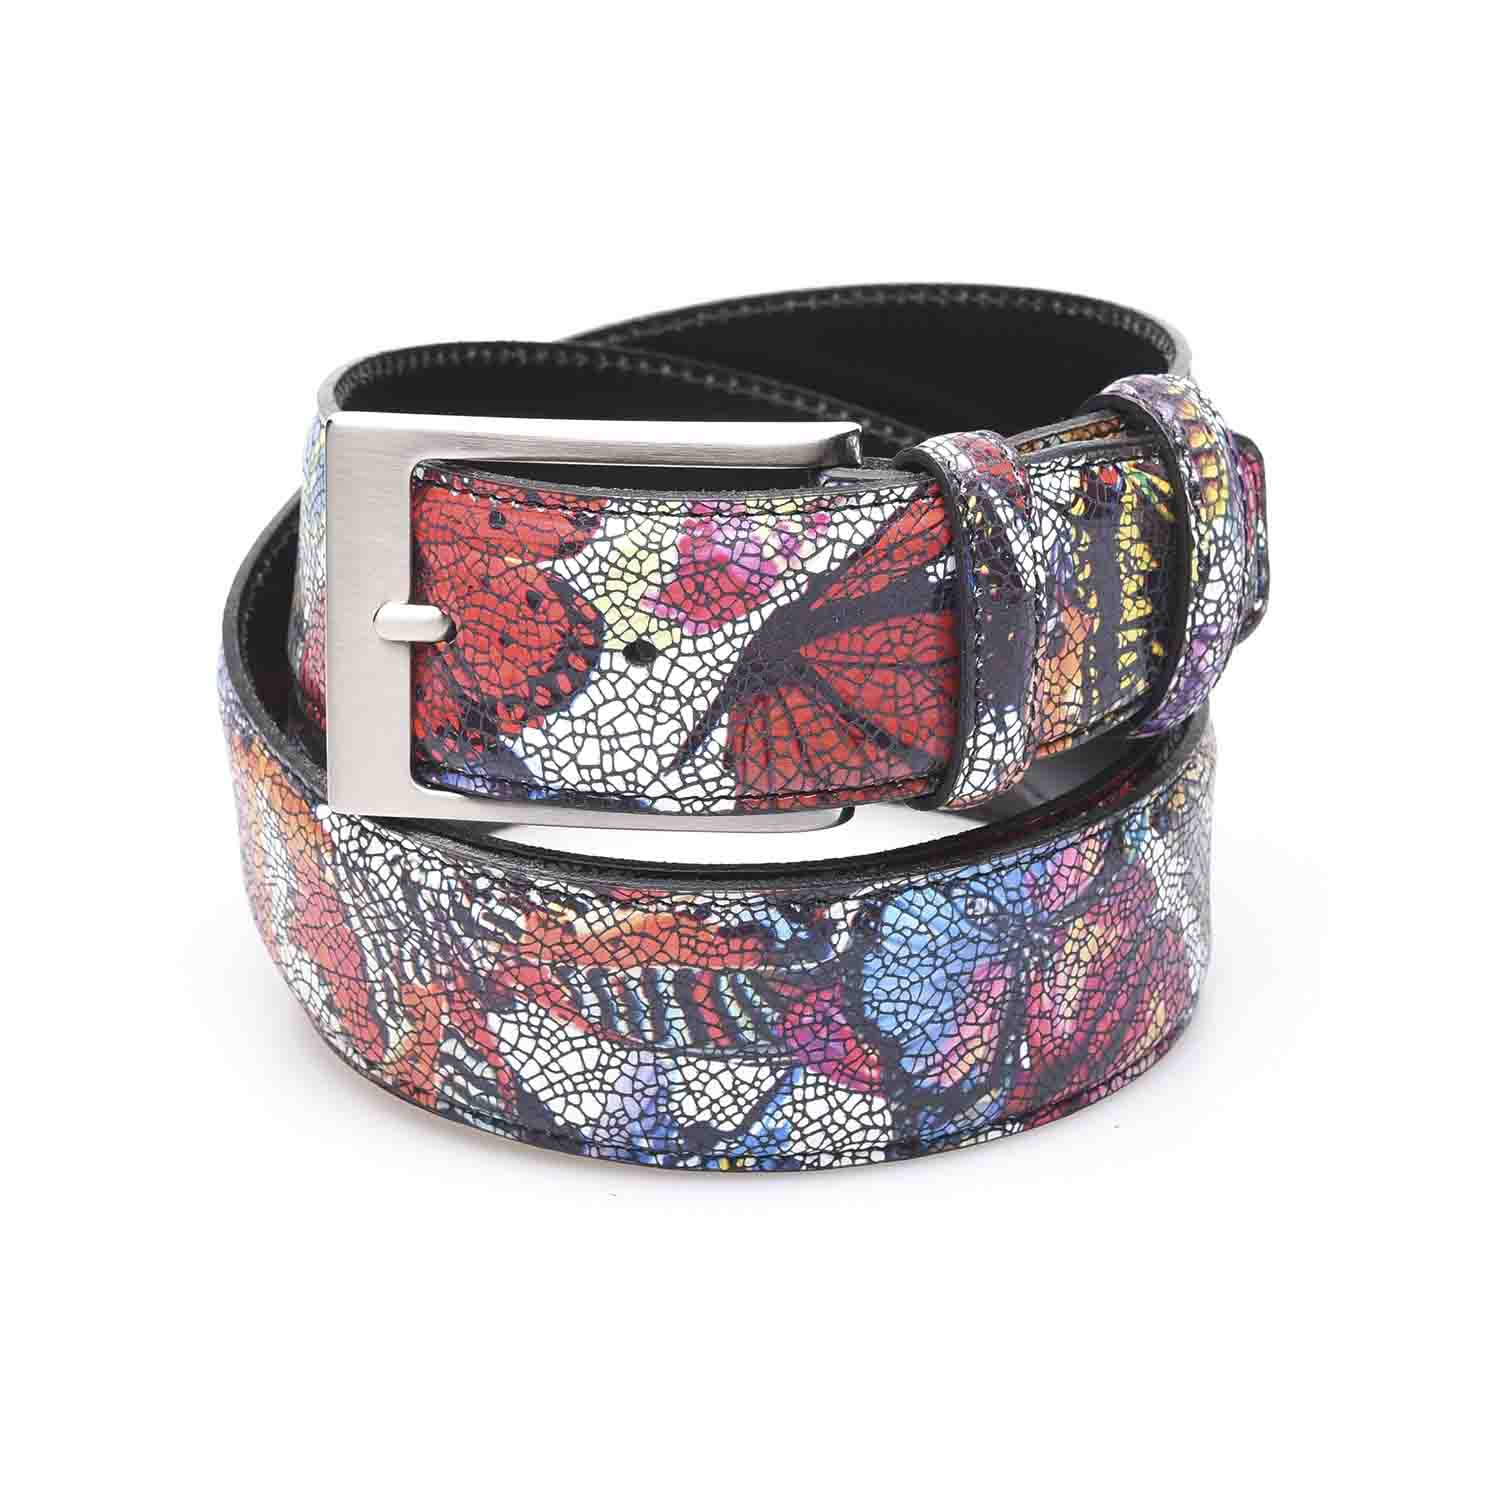 riem-assorti-print-belt-butterfly-breeze-nw-025500334